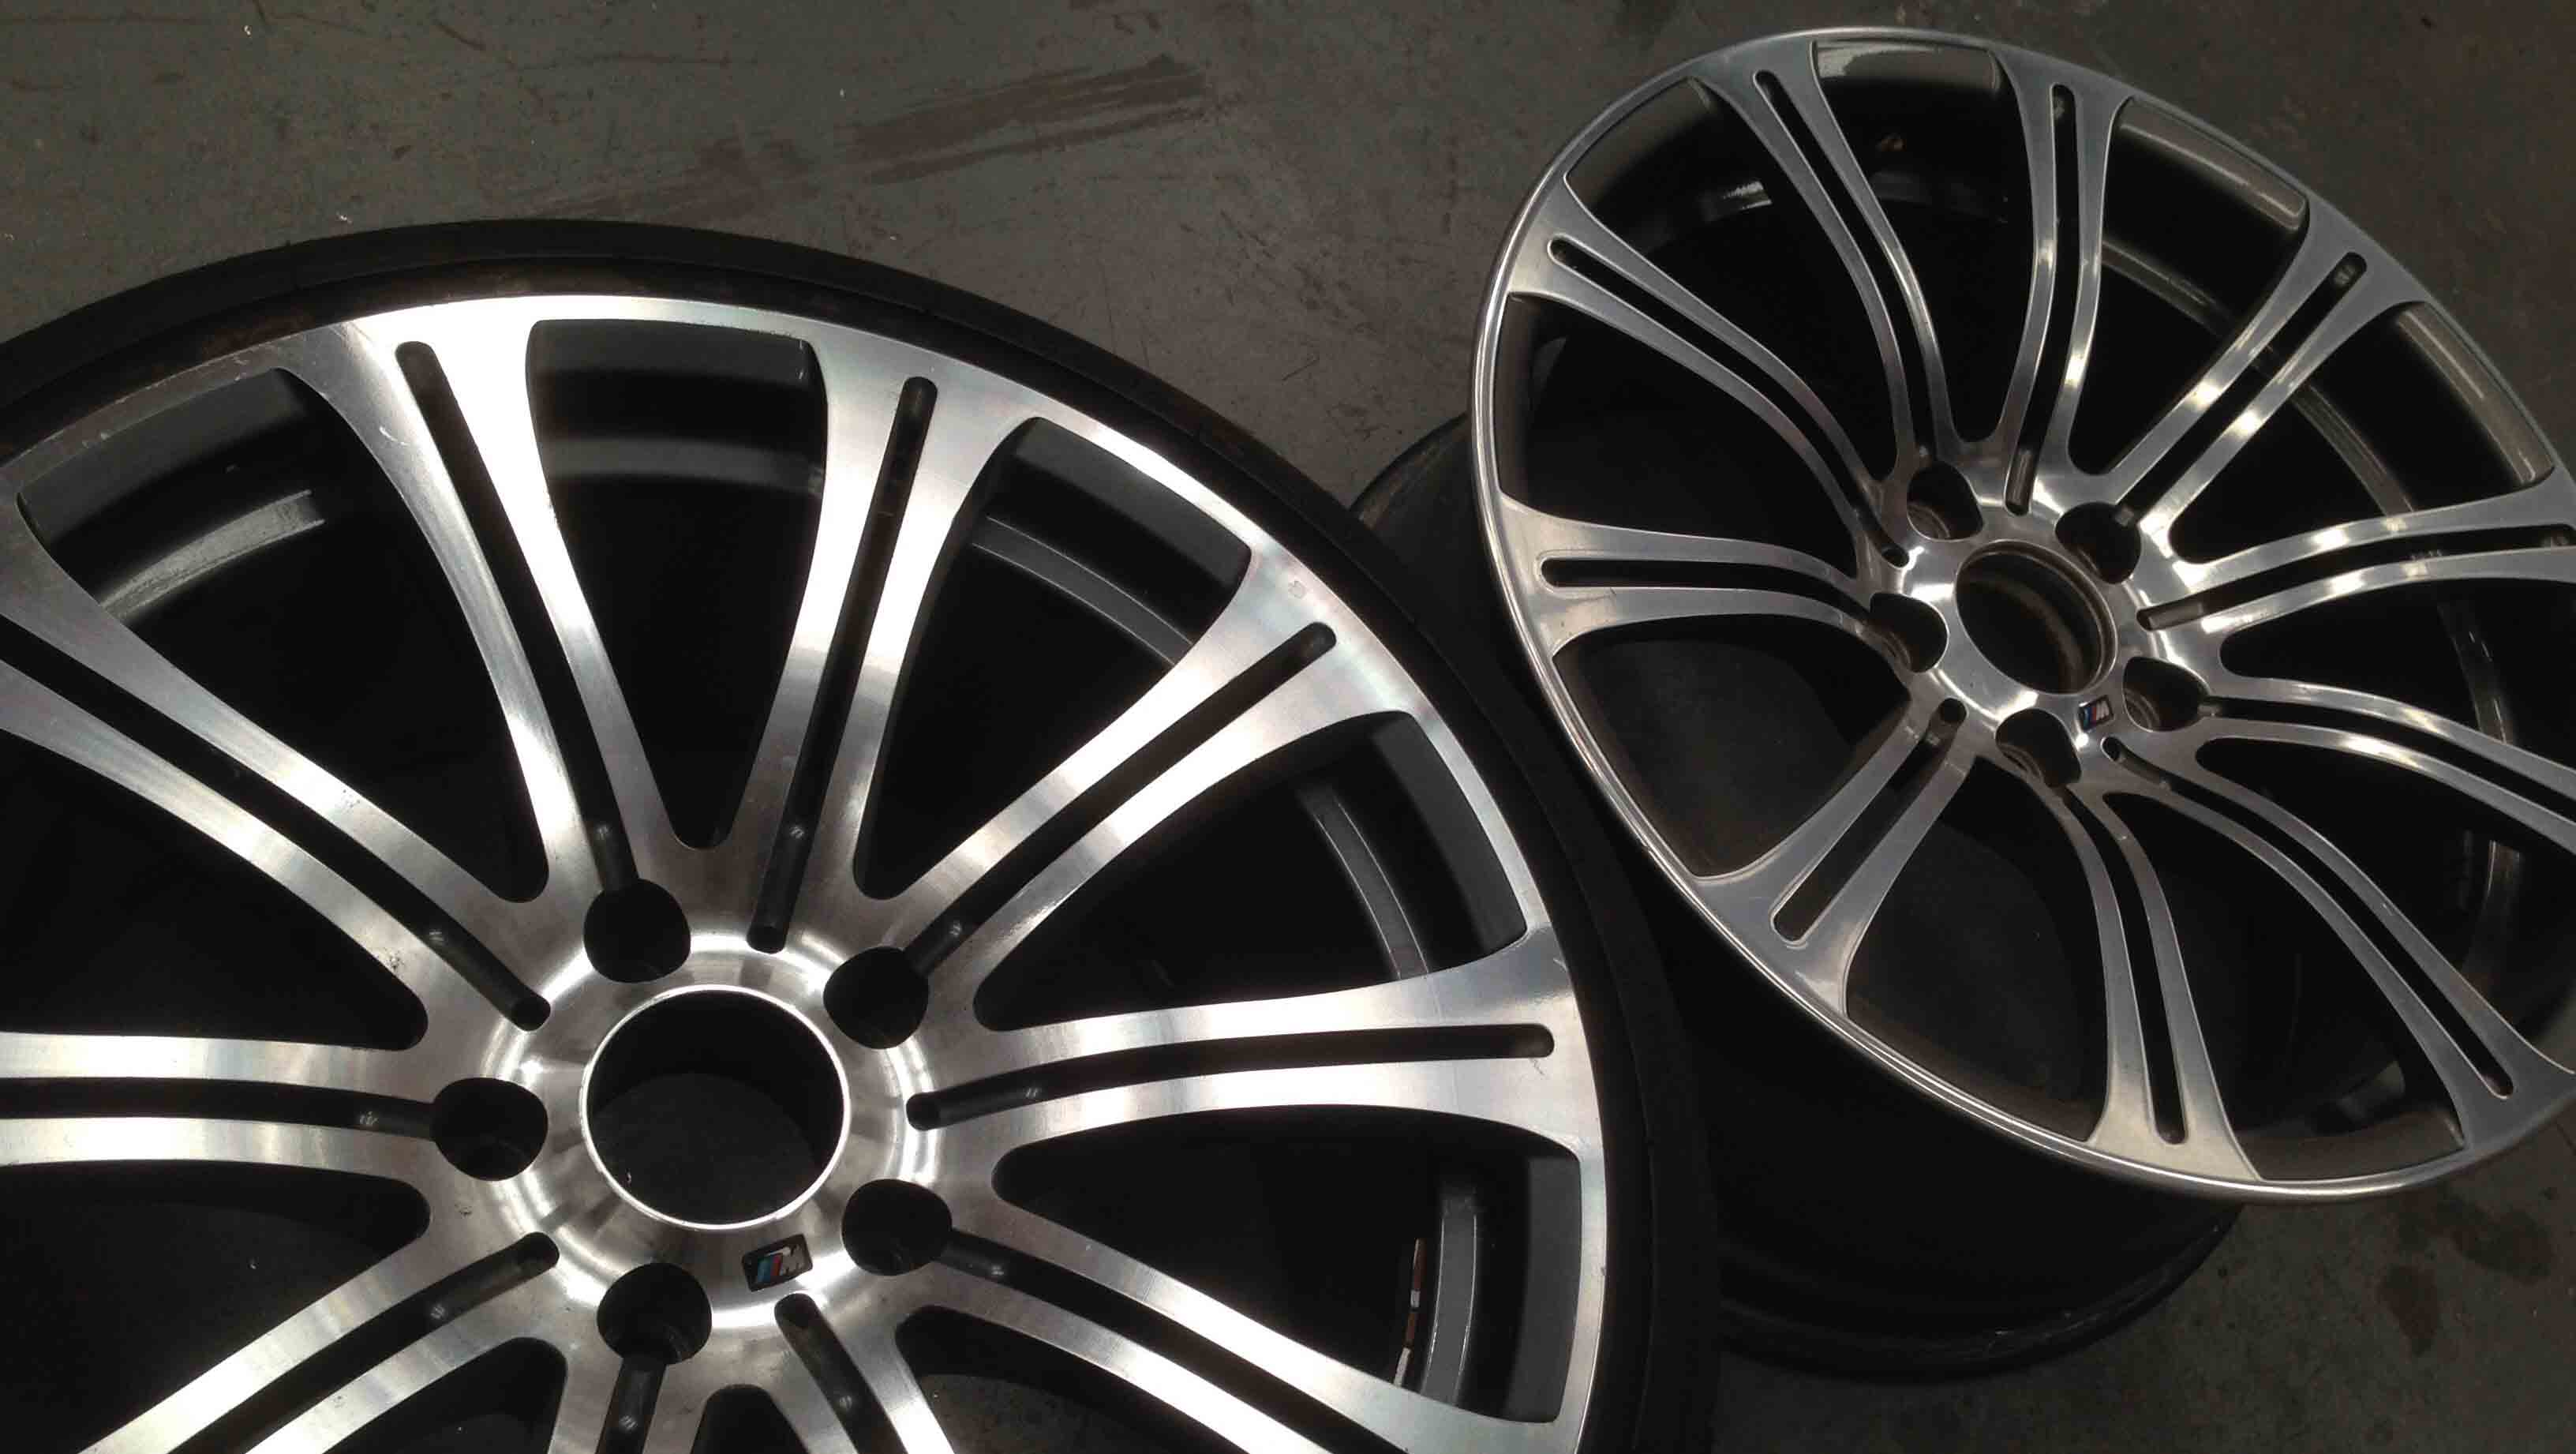 Audi Oem Wheel Database Wheels Cheap Counterfeit Can Pose A Safety Risk Car Advice Carsguide 3264x1842